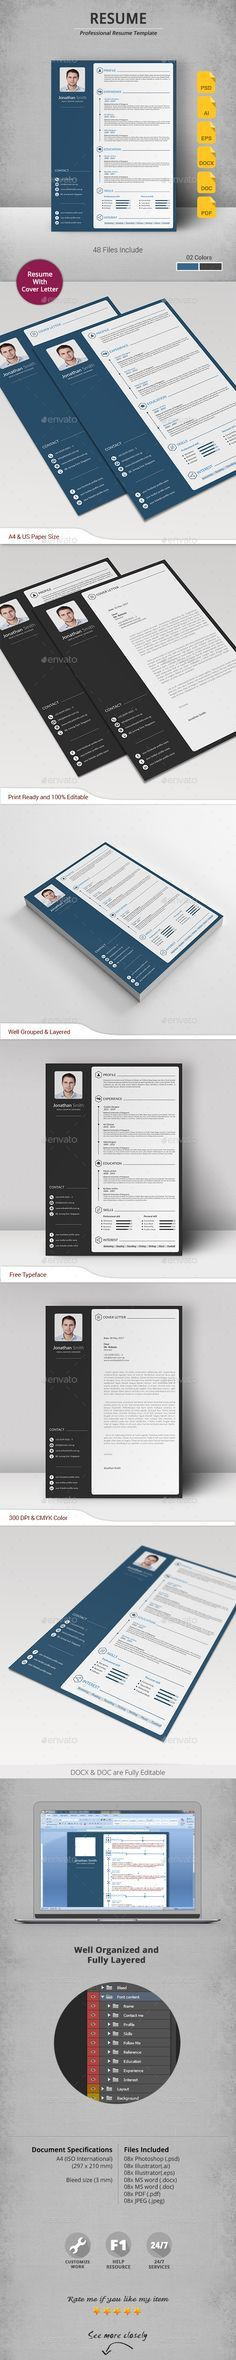 Resume | Cv design, Creative resume templates and Letter size